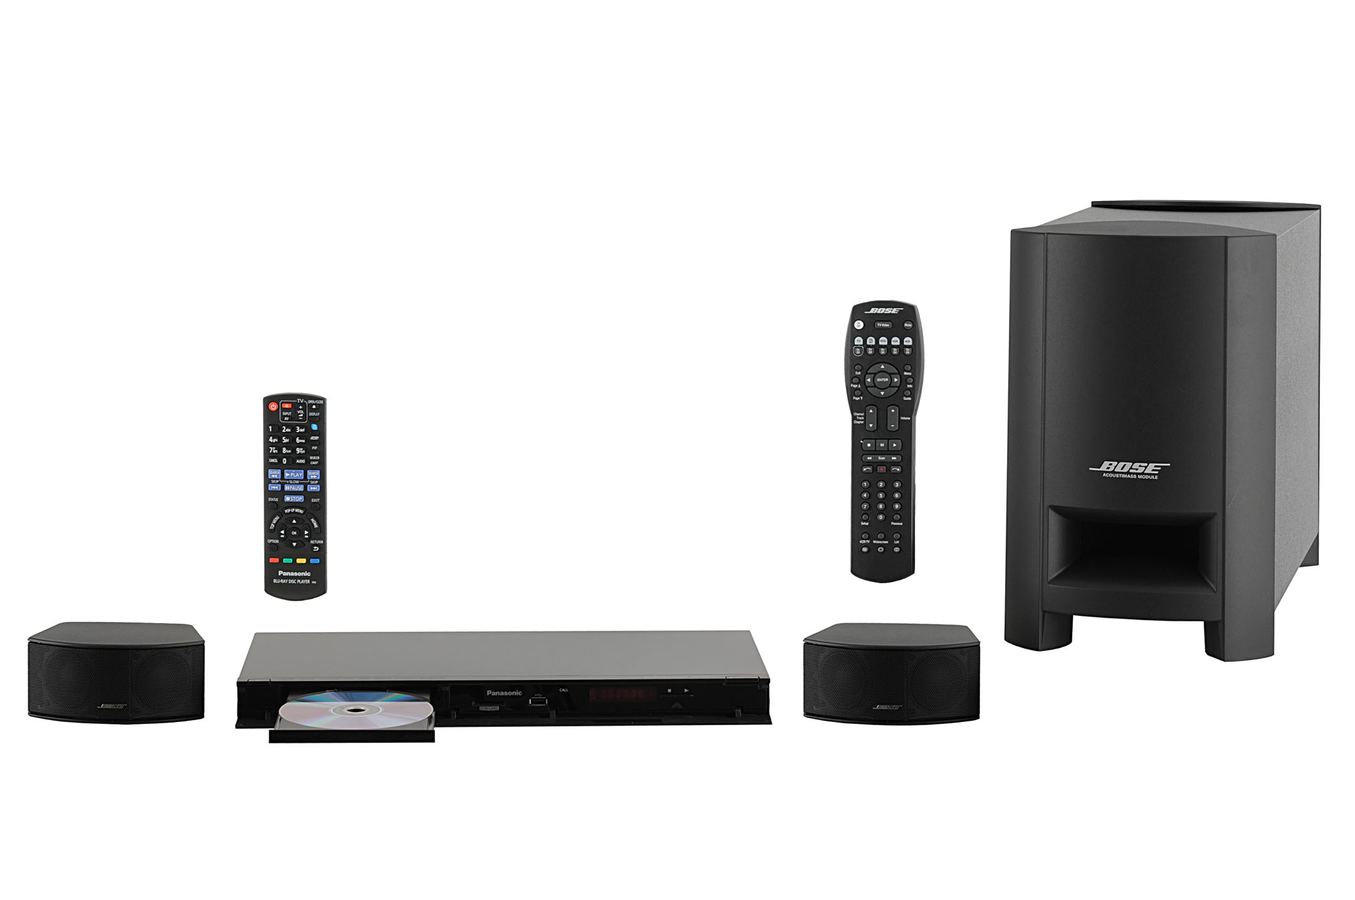 enceinte pour tv bose cinemate blu ray 3522571 darty. Black Bedroom Furniture Sets. Home Design Ideas